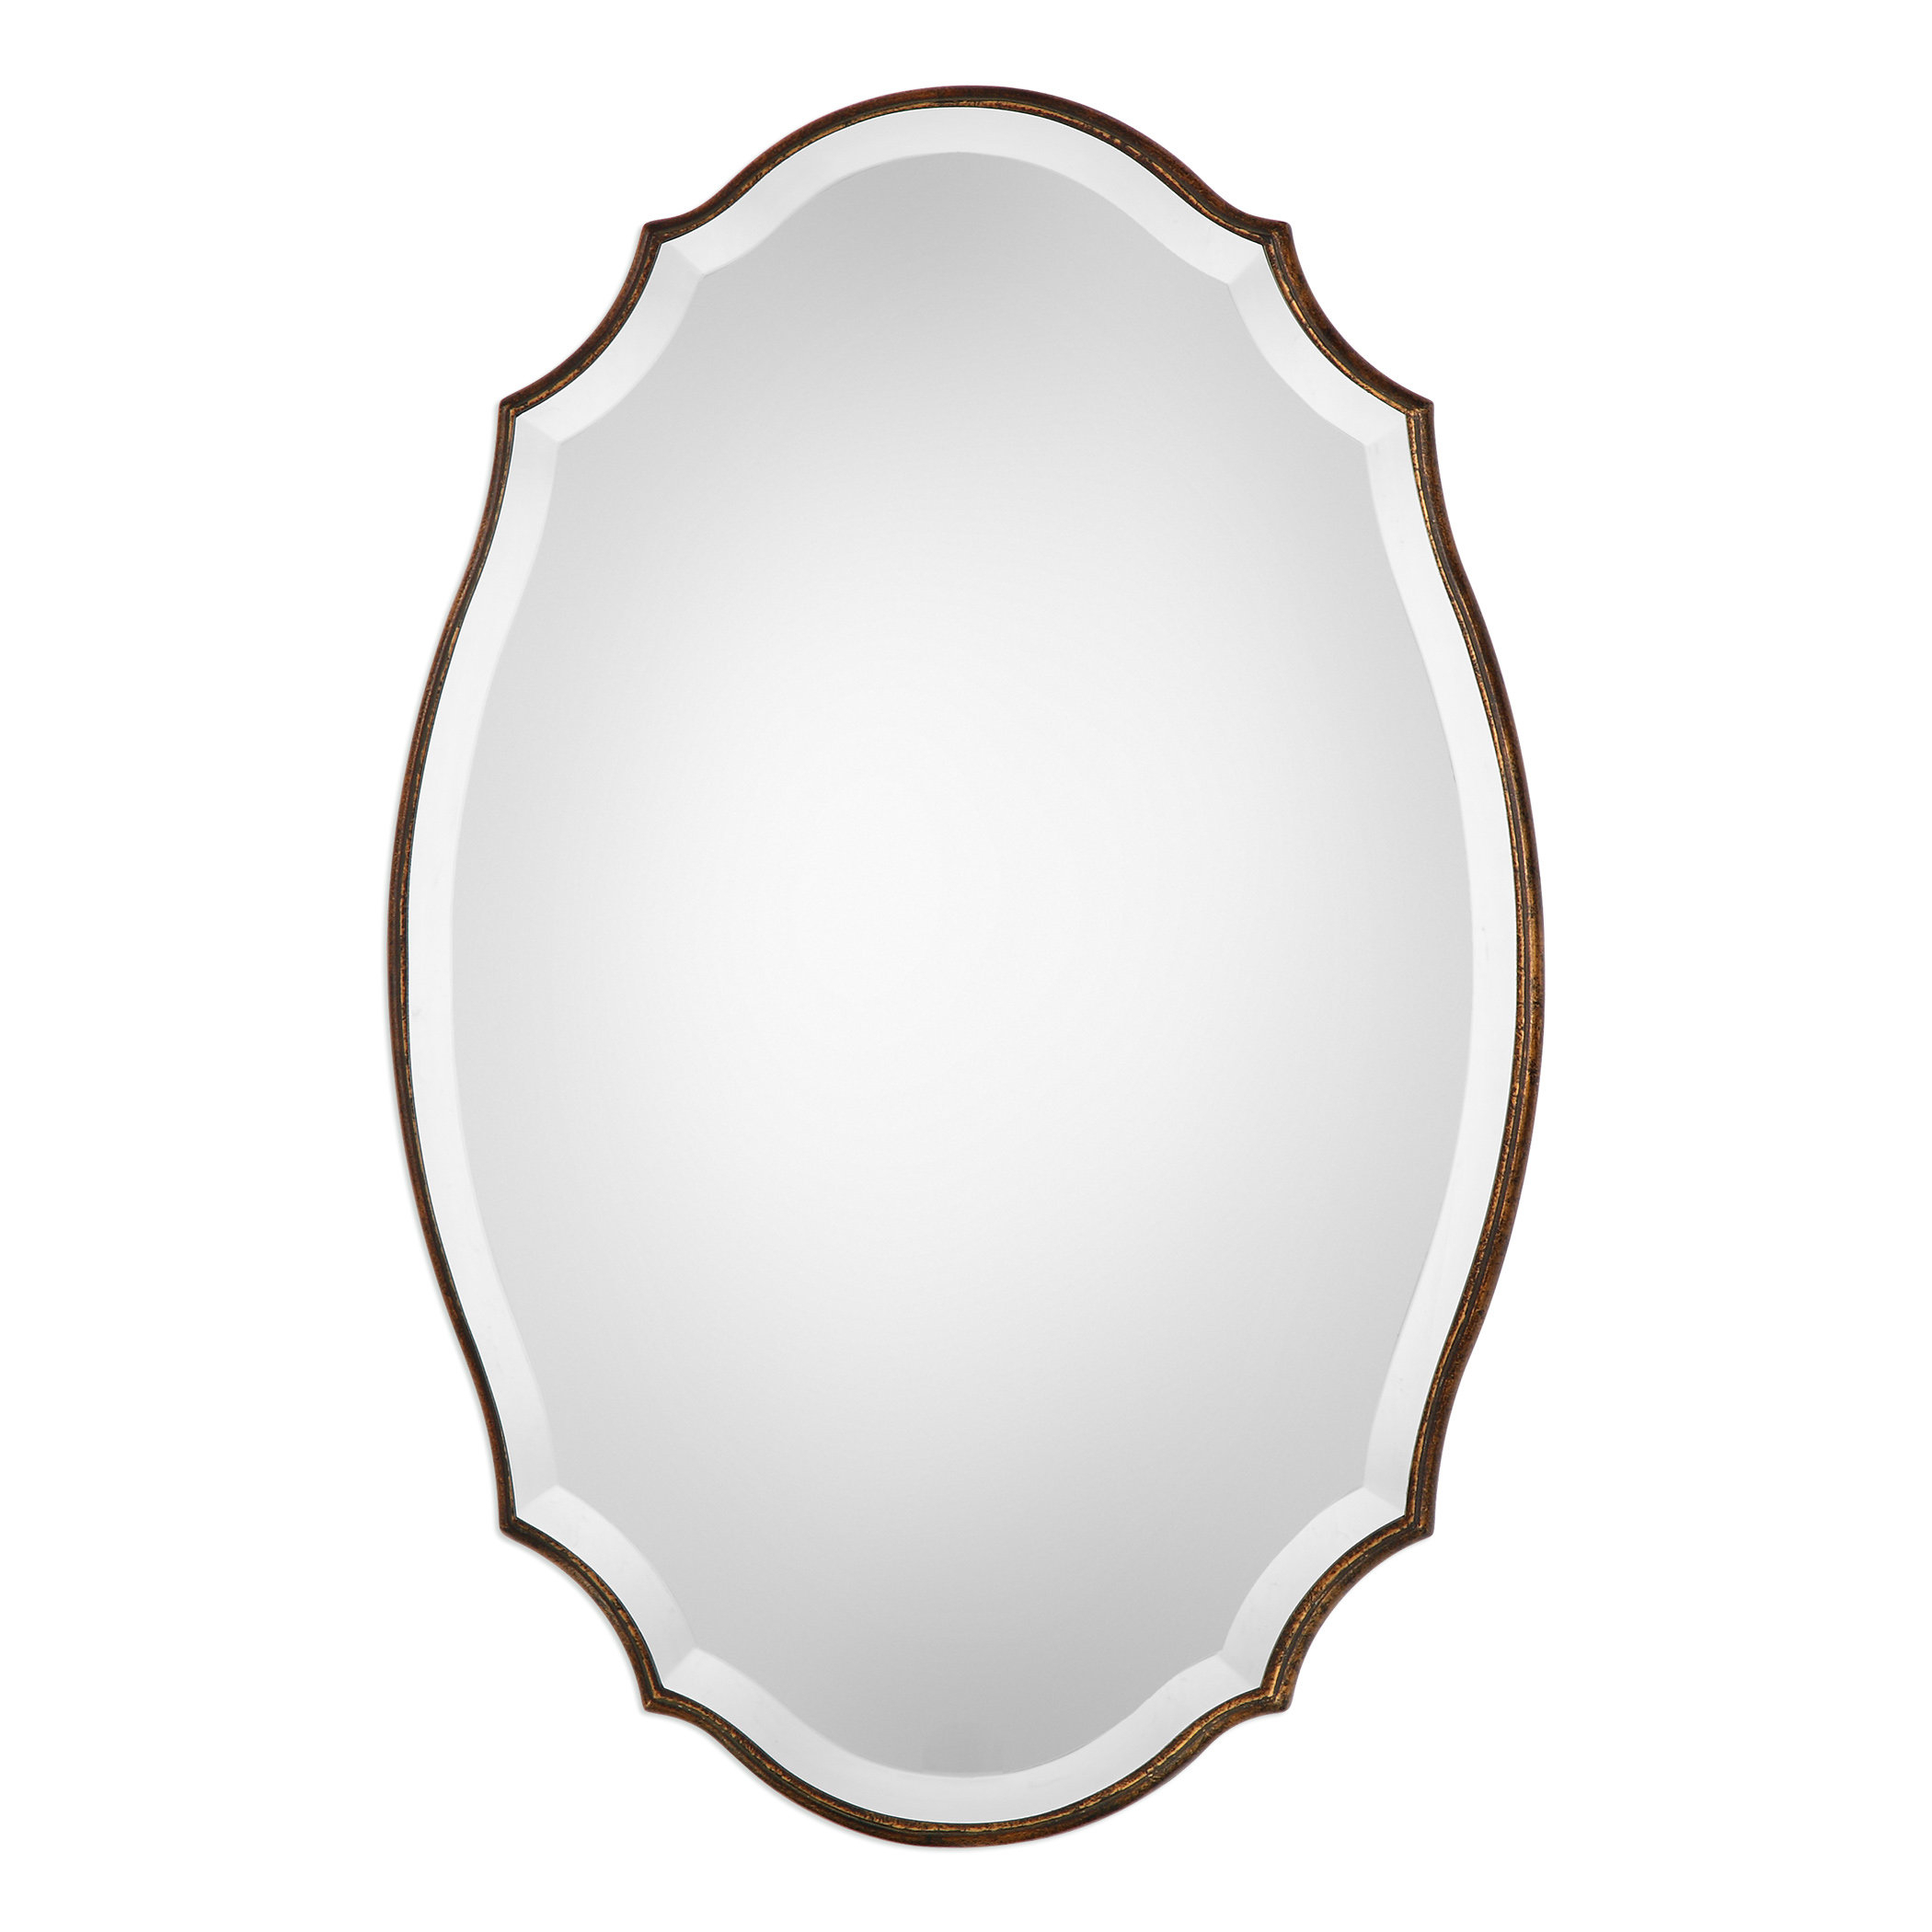 Modern & Contemporary Beveled Accent Mirror Intended For Guidinha Modern & Contemporary Accent Mirrors (View 4 of 30)